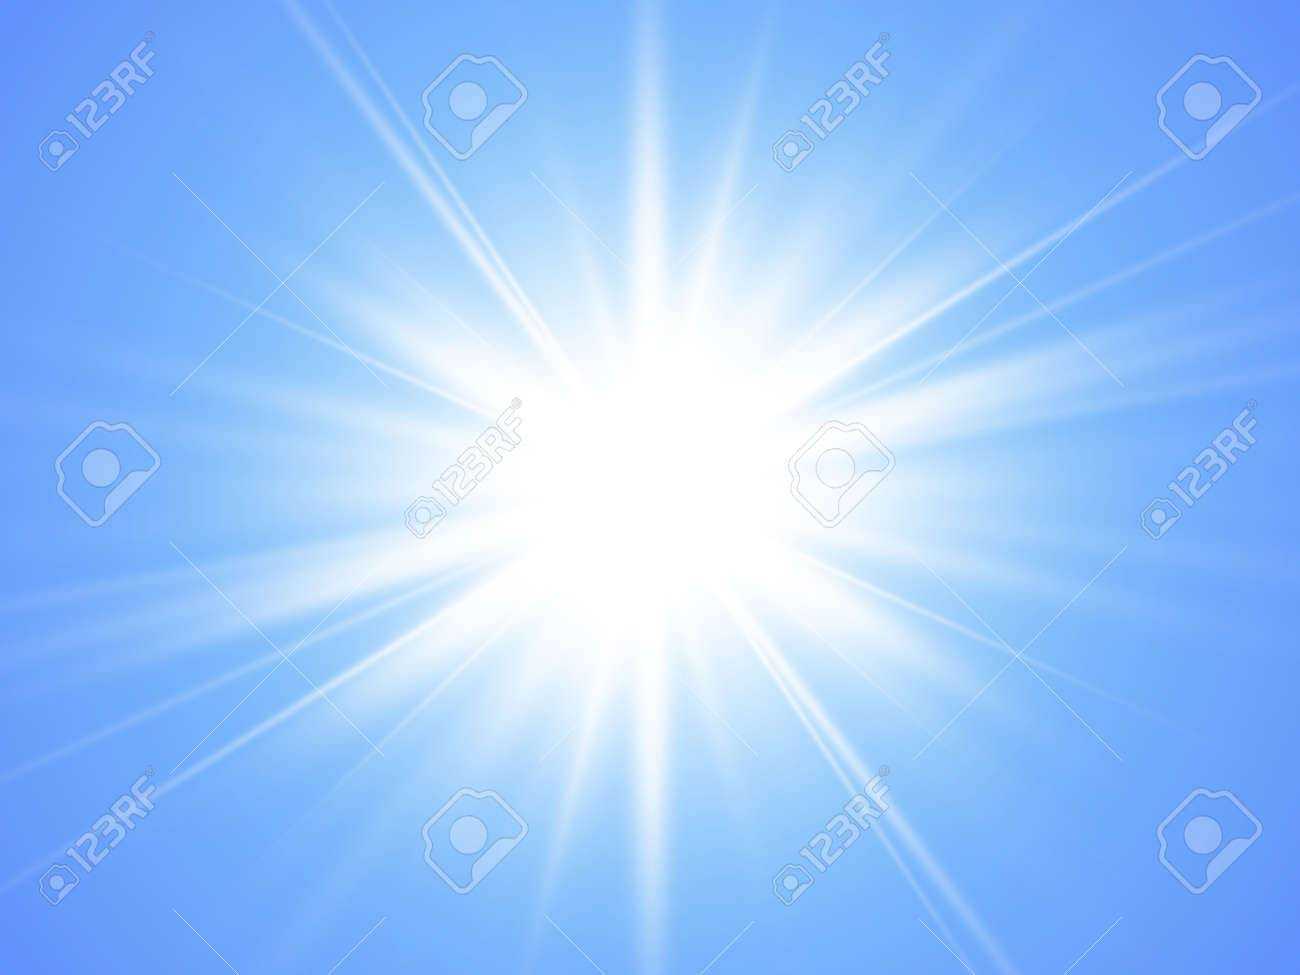 Sun with rayson on blue background. Glow light effect. Summer time. Vector illustration. EPS10 - 157200243